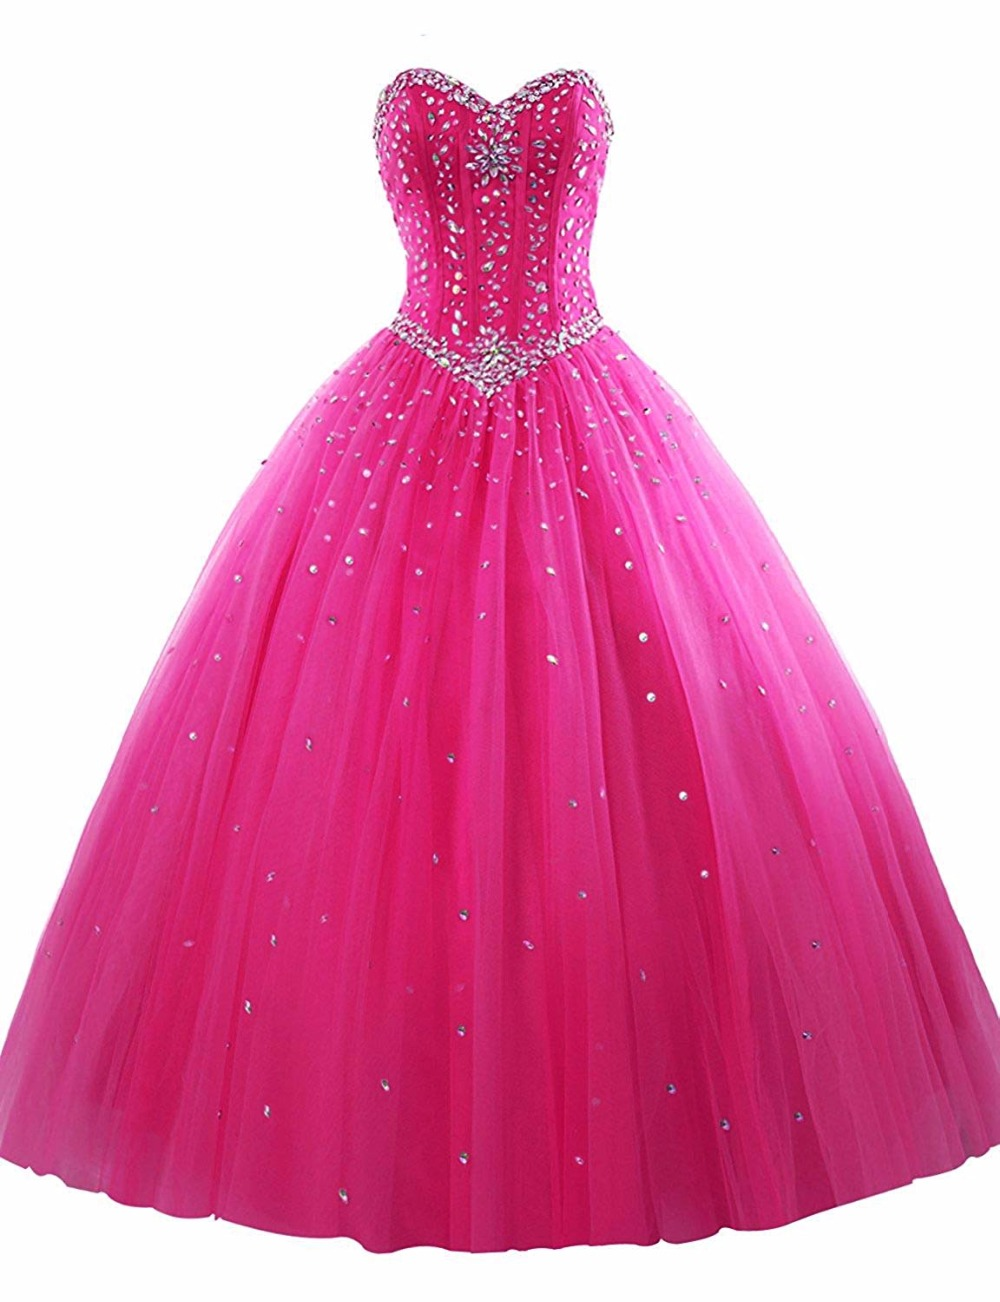 Lovely Sweetheart Quinceanera Dresses Pink Color Lace Inside Tulle Skirt Vestidos De Debutantes De 15 Anos Puffy Ball Gowns Perfect In Workmanship Weddings & Events